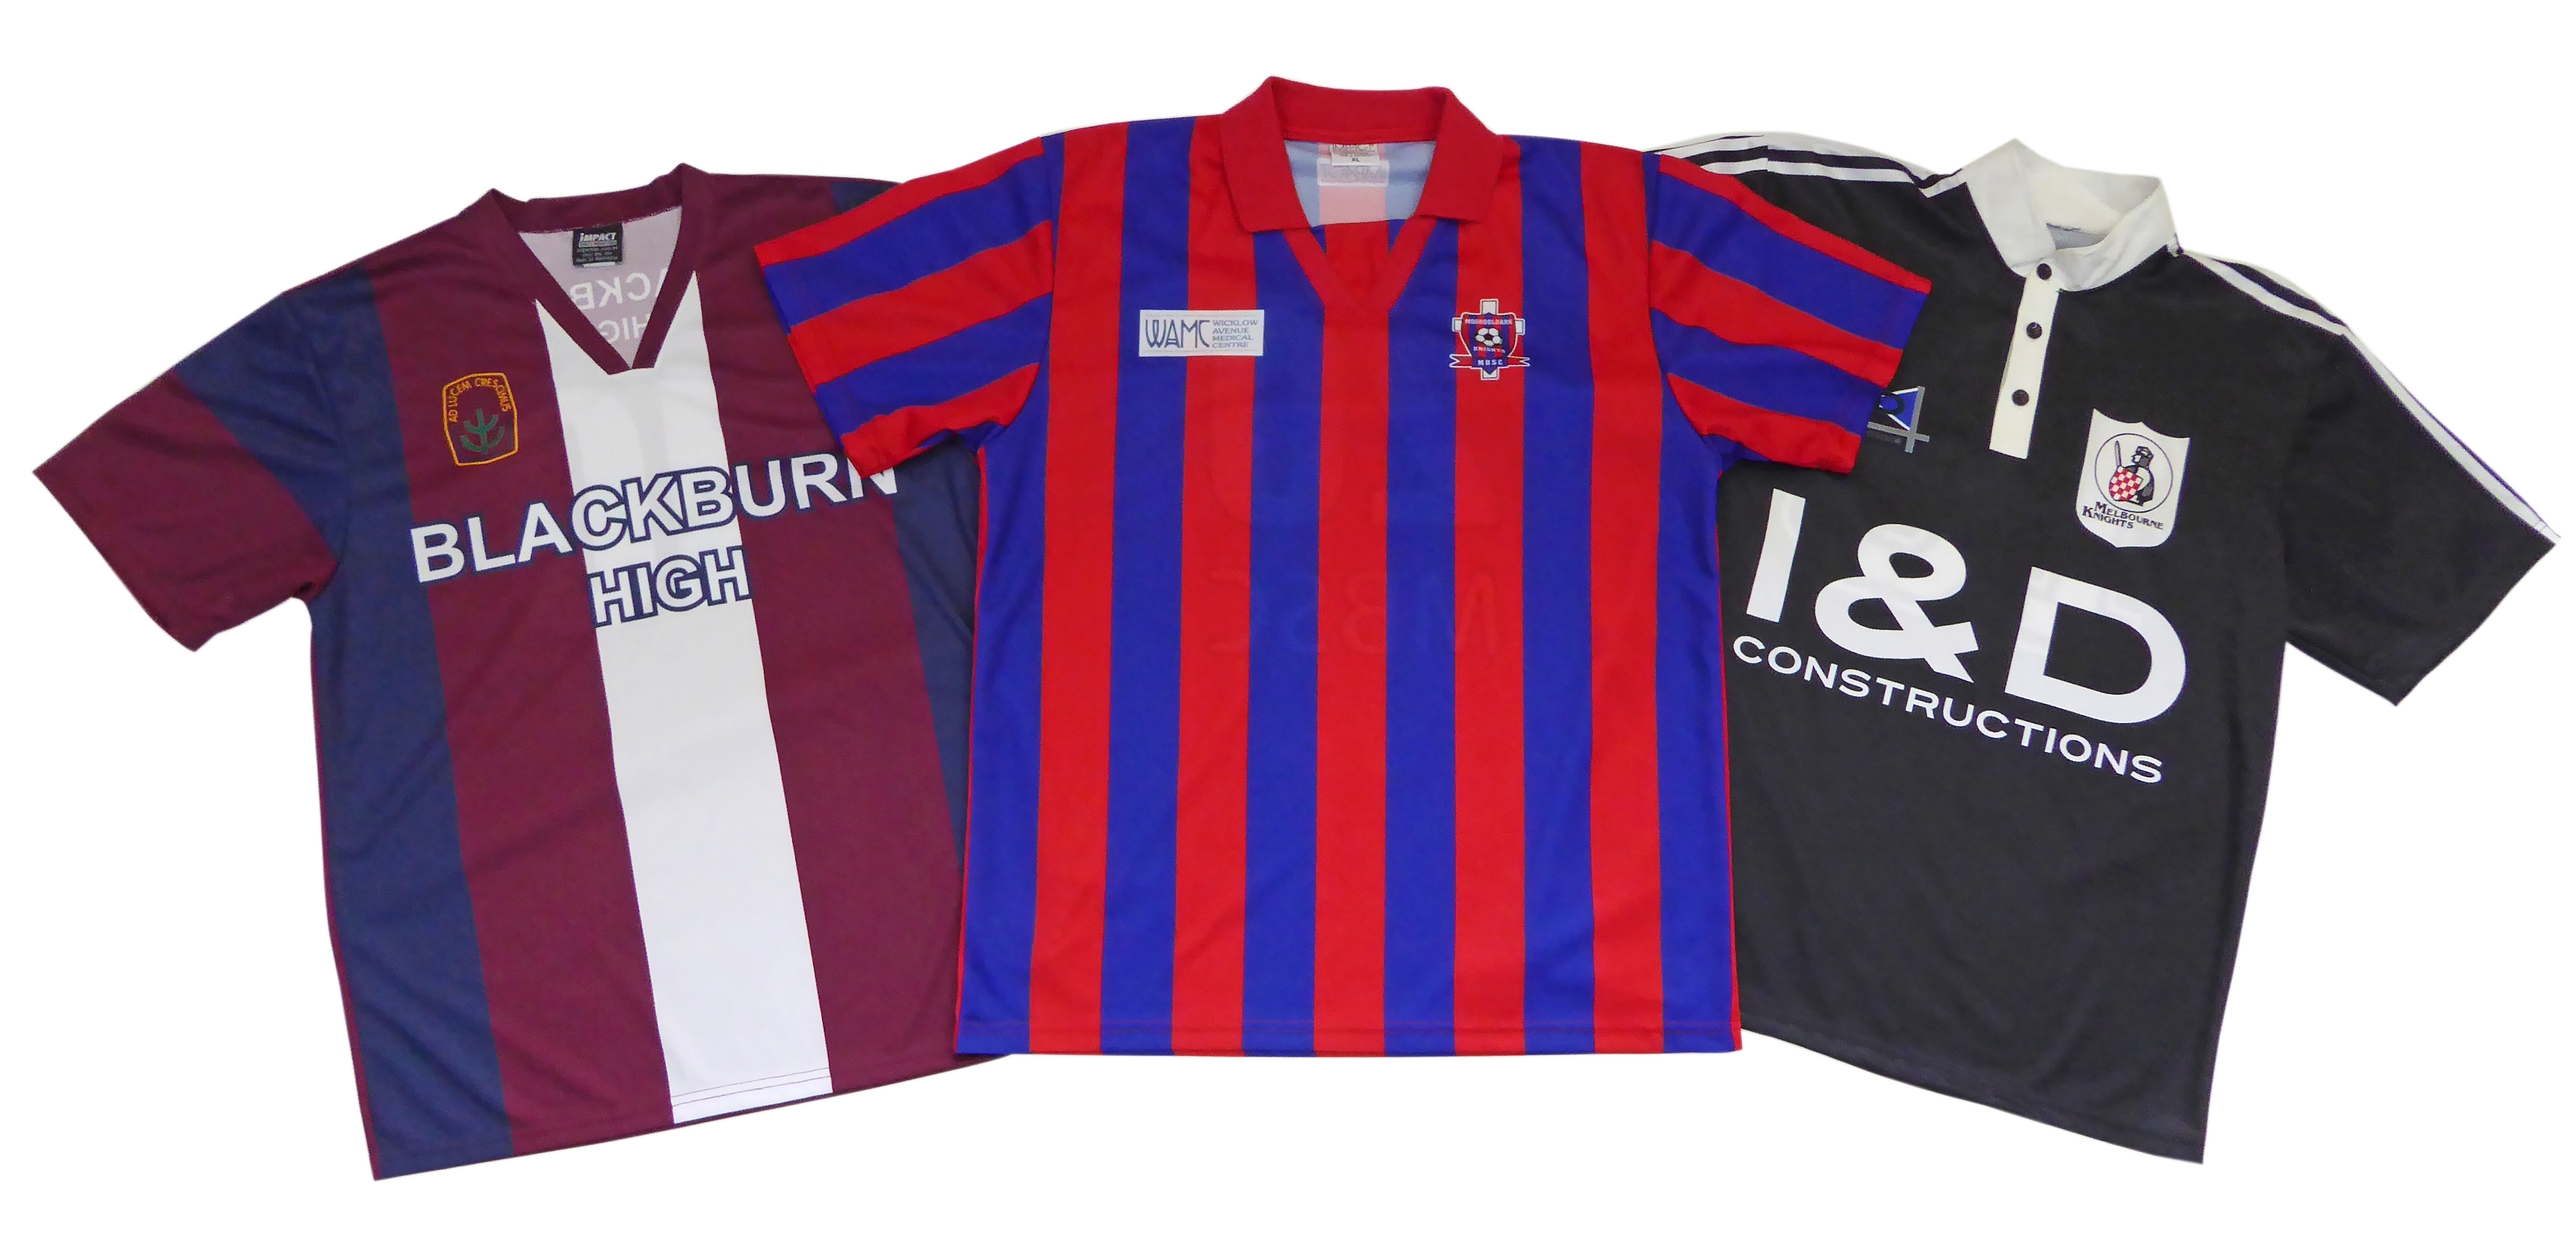 Soccer uniforms in a variety of designs 5d75e6251